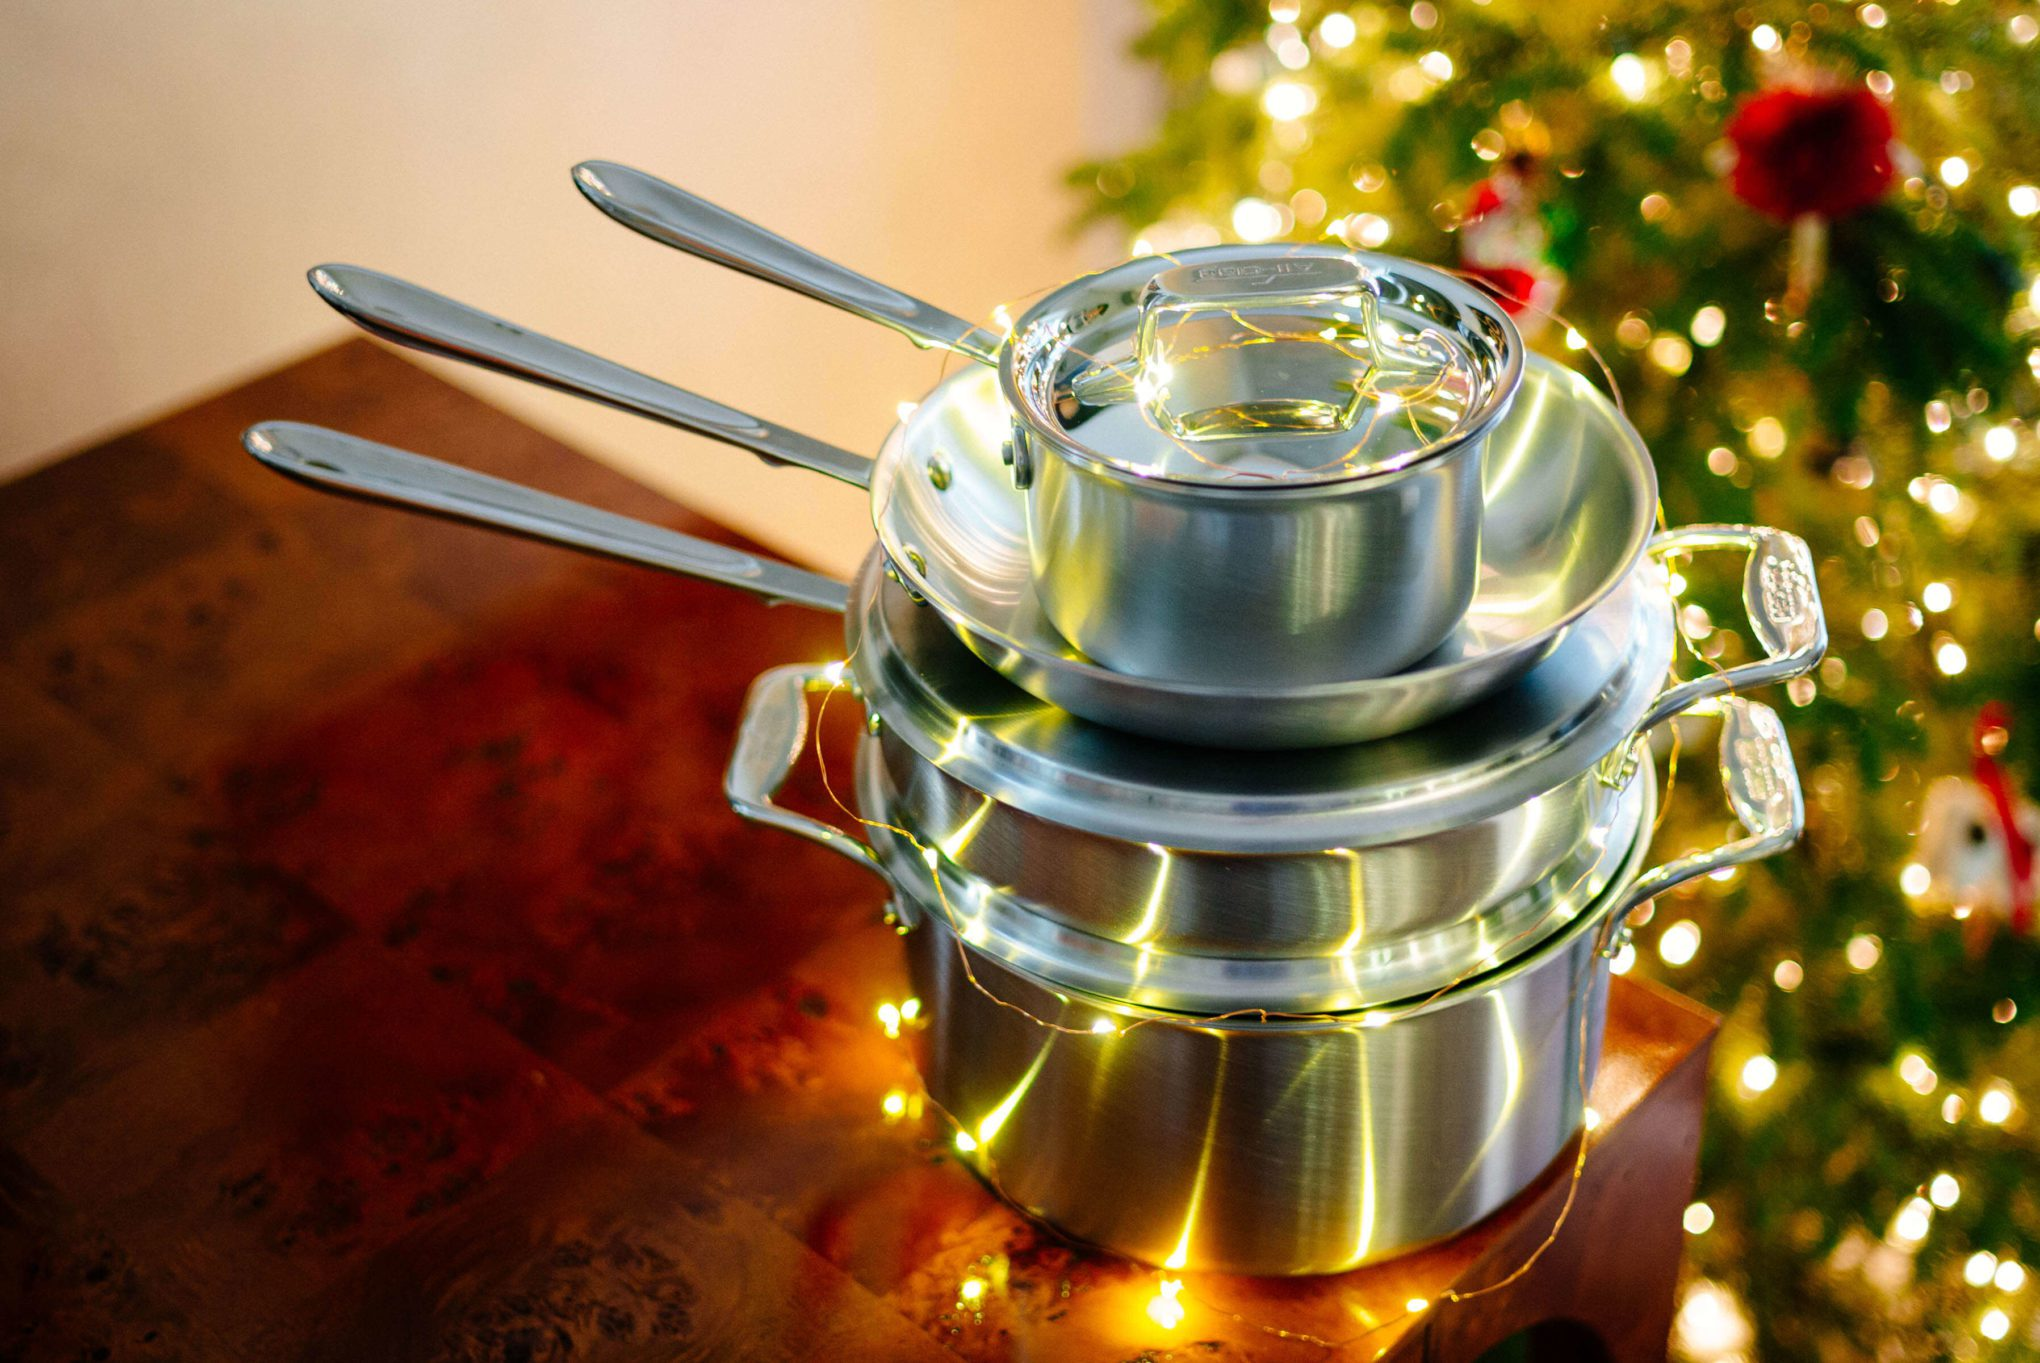 Win a set of all clad pans from the taste sf and all clad